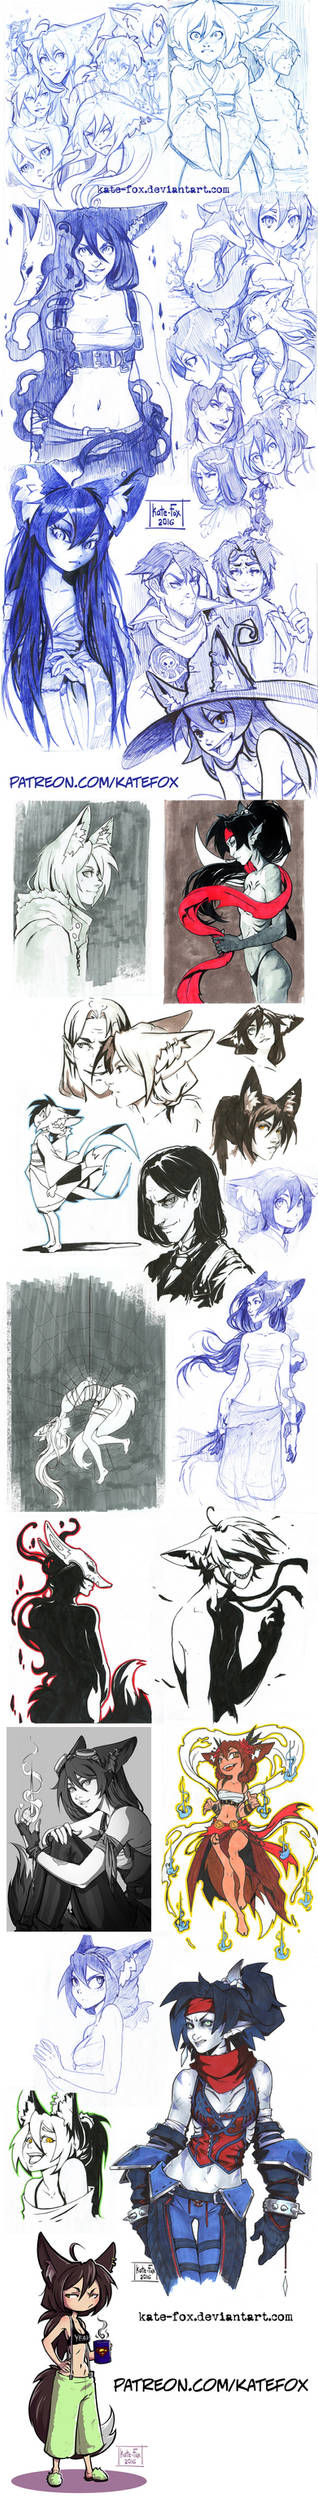 Sketches 15-16 by Kate-FoX